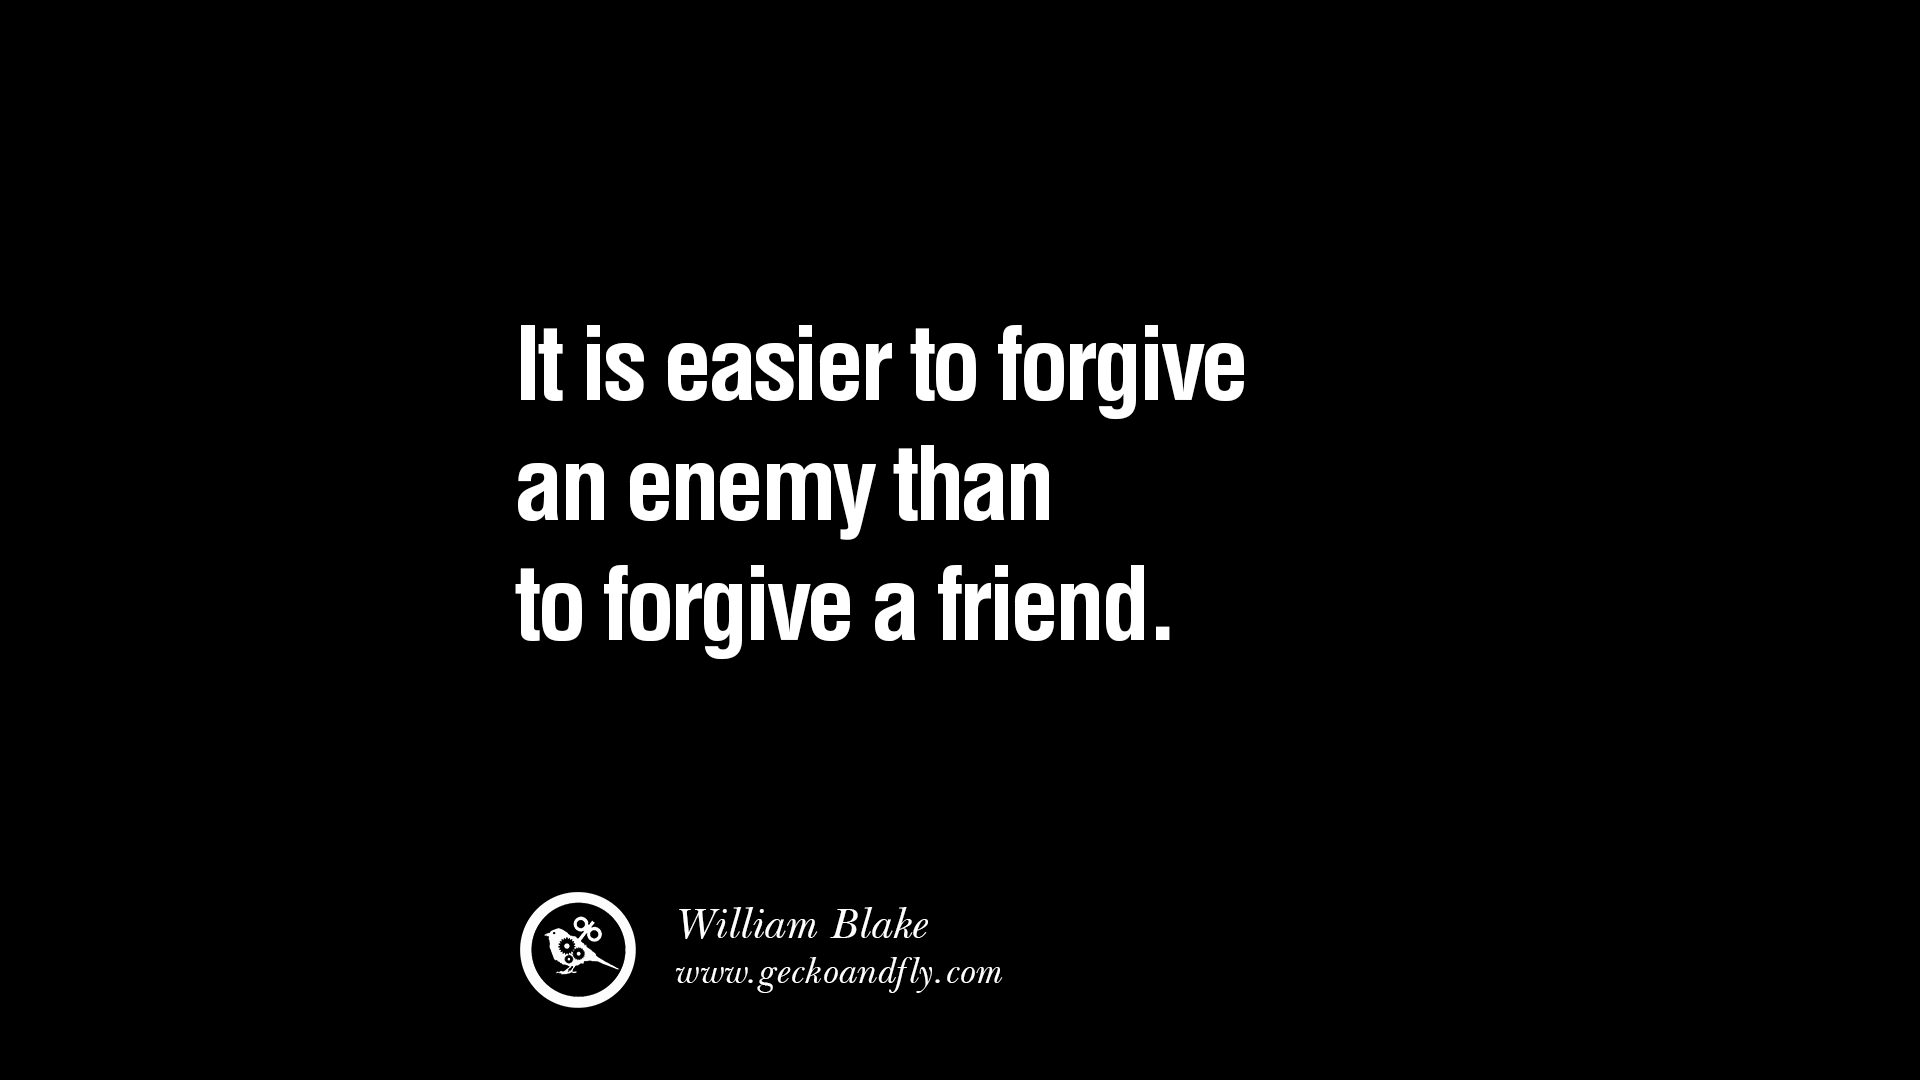 Quotes About Lying And Betrayal: Biblical Quotes On Betrayal. QuotesGram